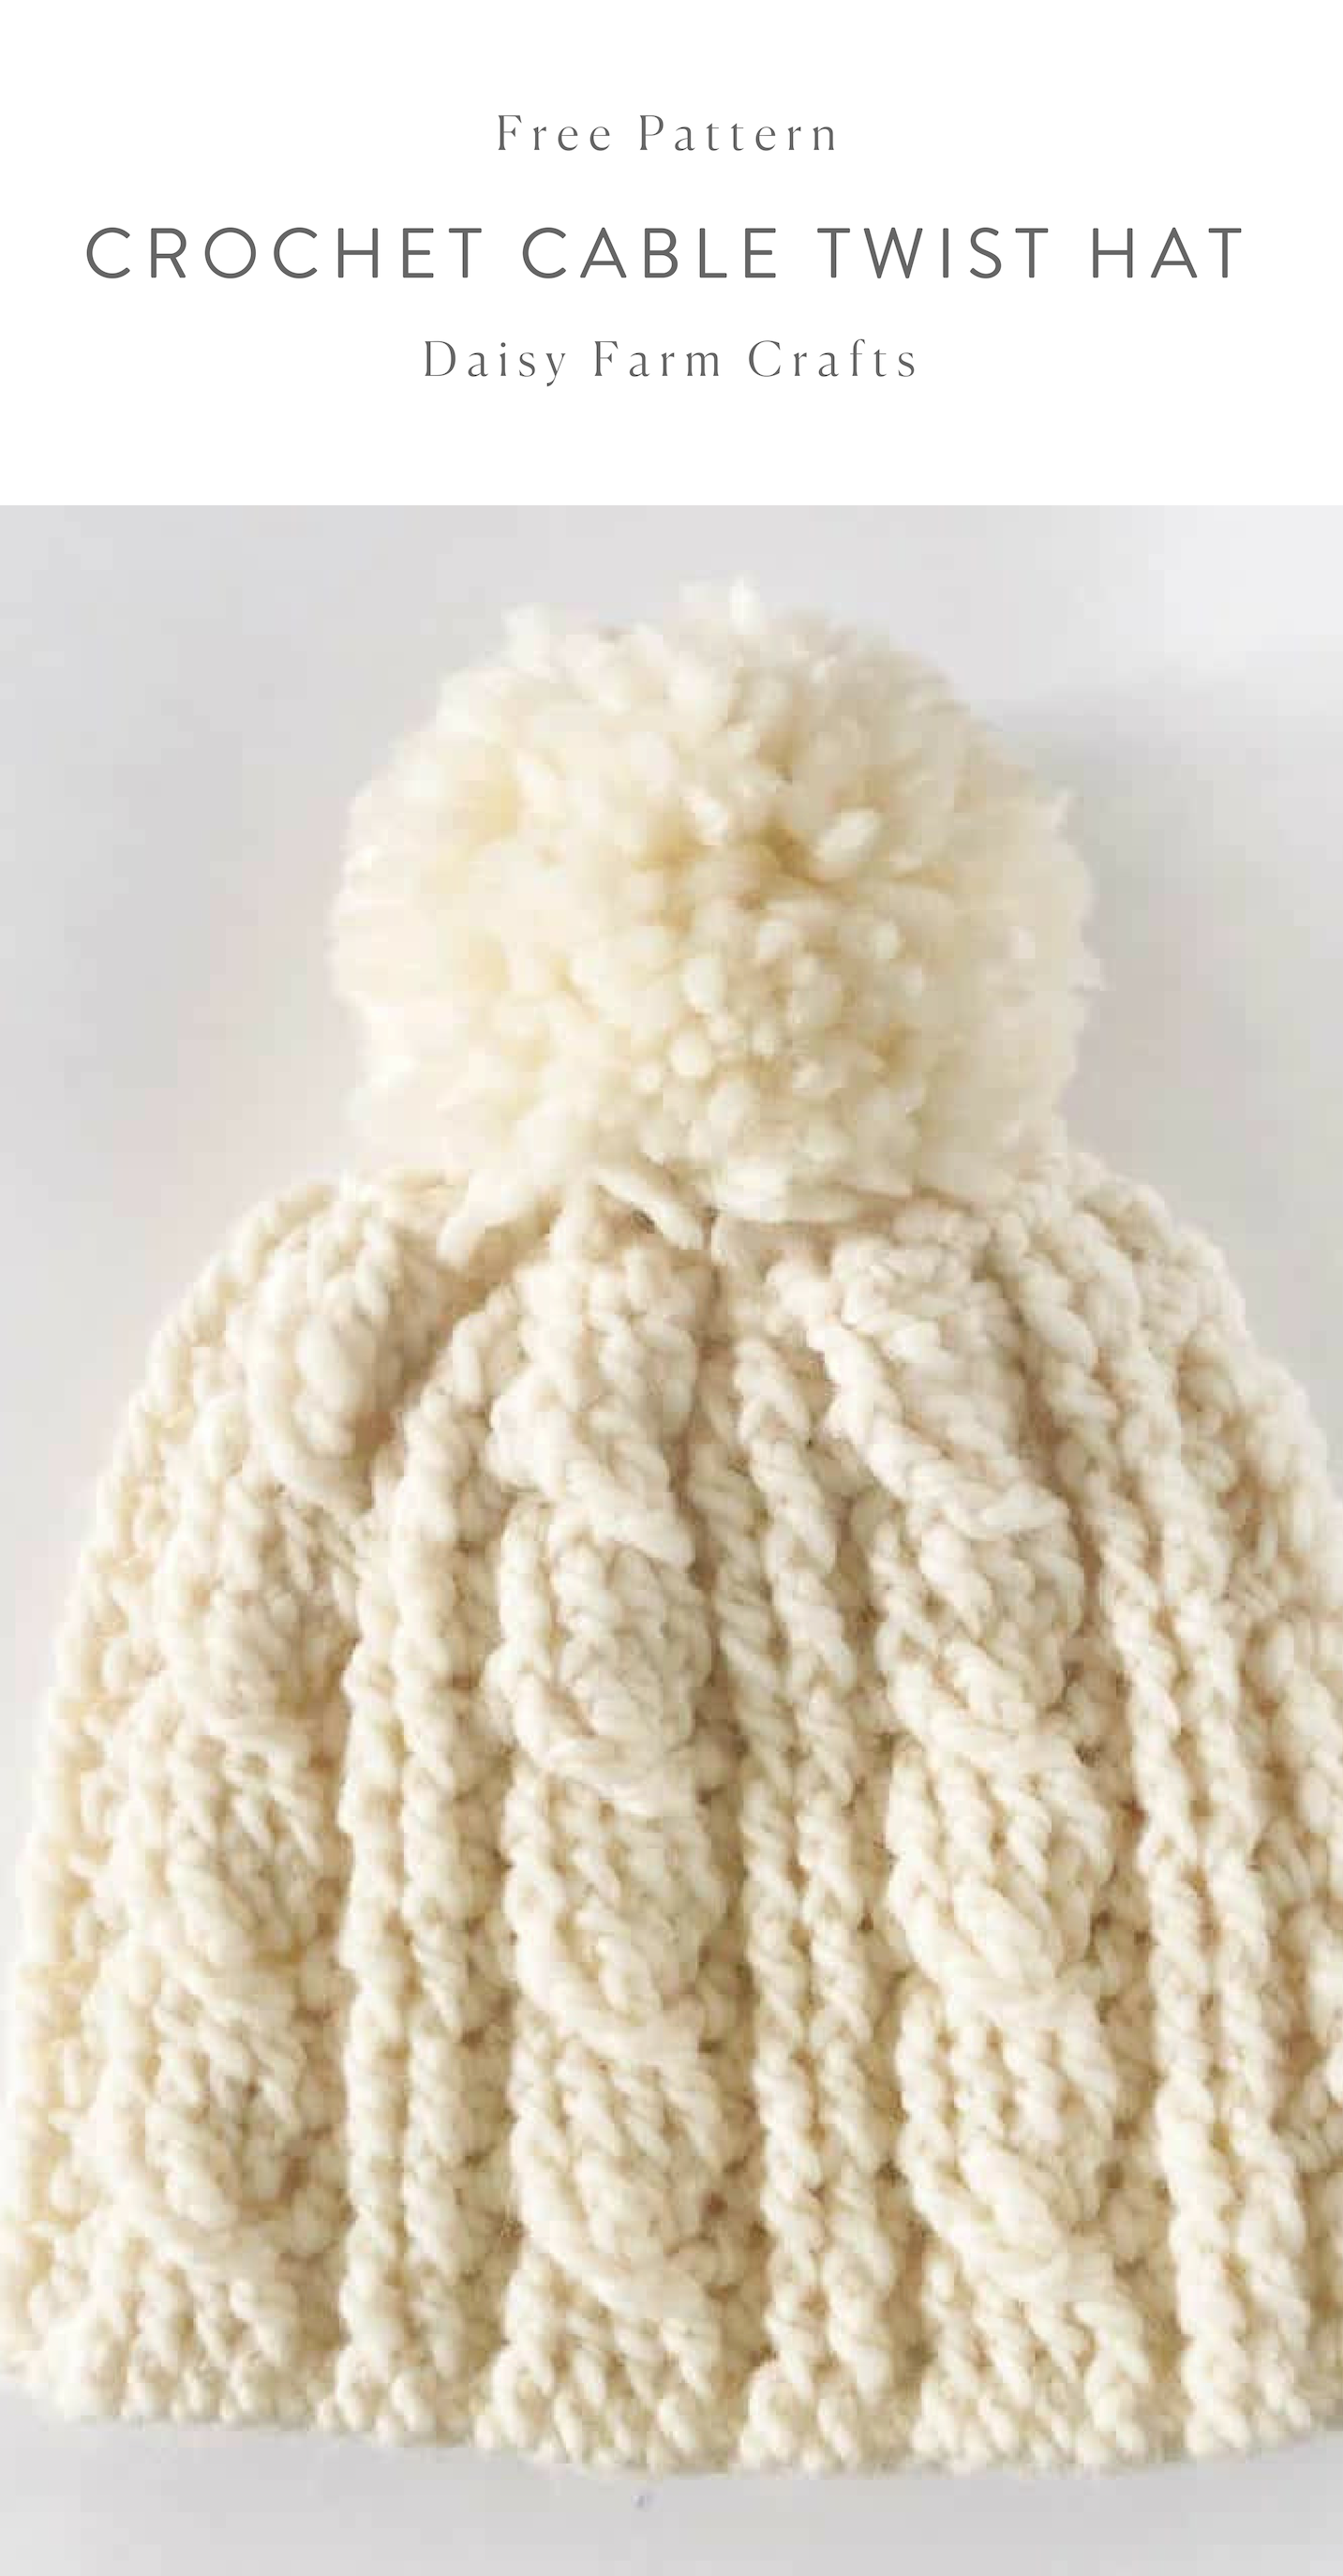 Free Pattern - Crochet Cable Twist Hat | gorros bebes | Pinterest ...